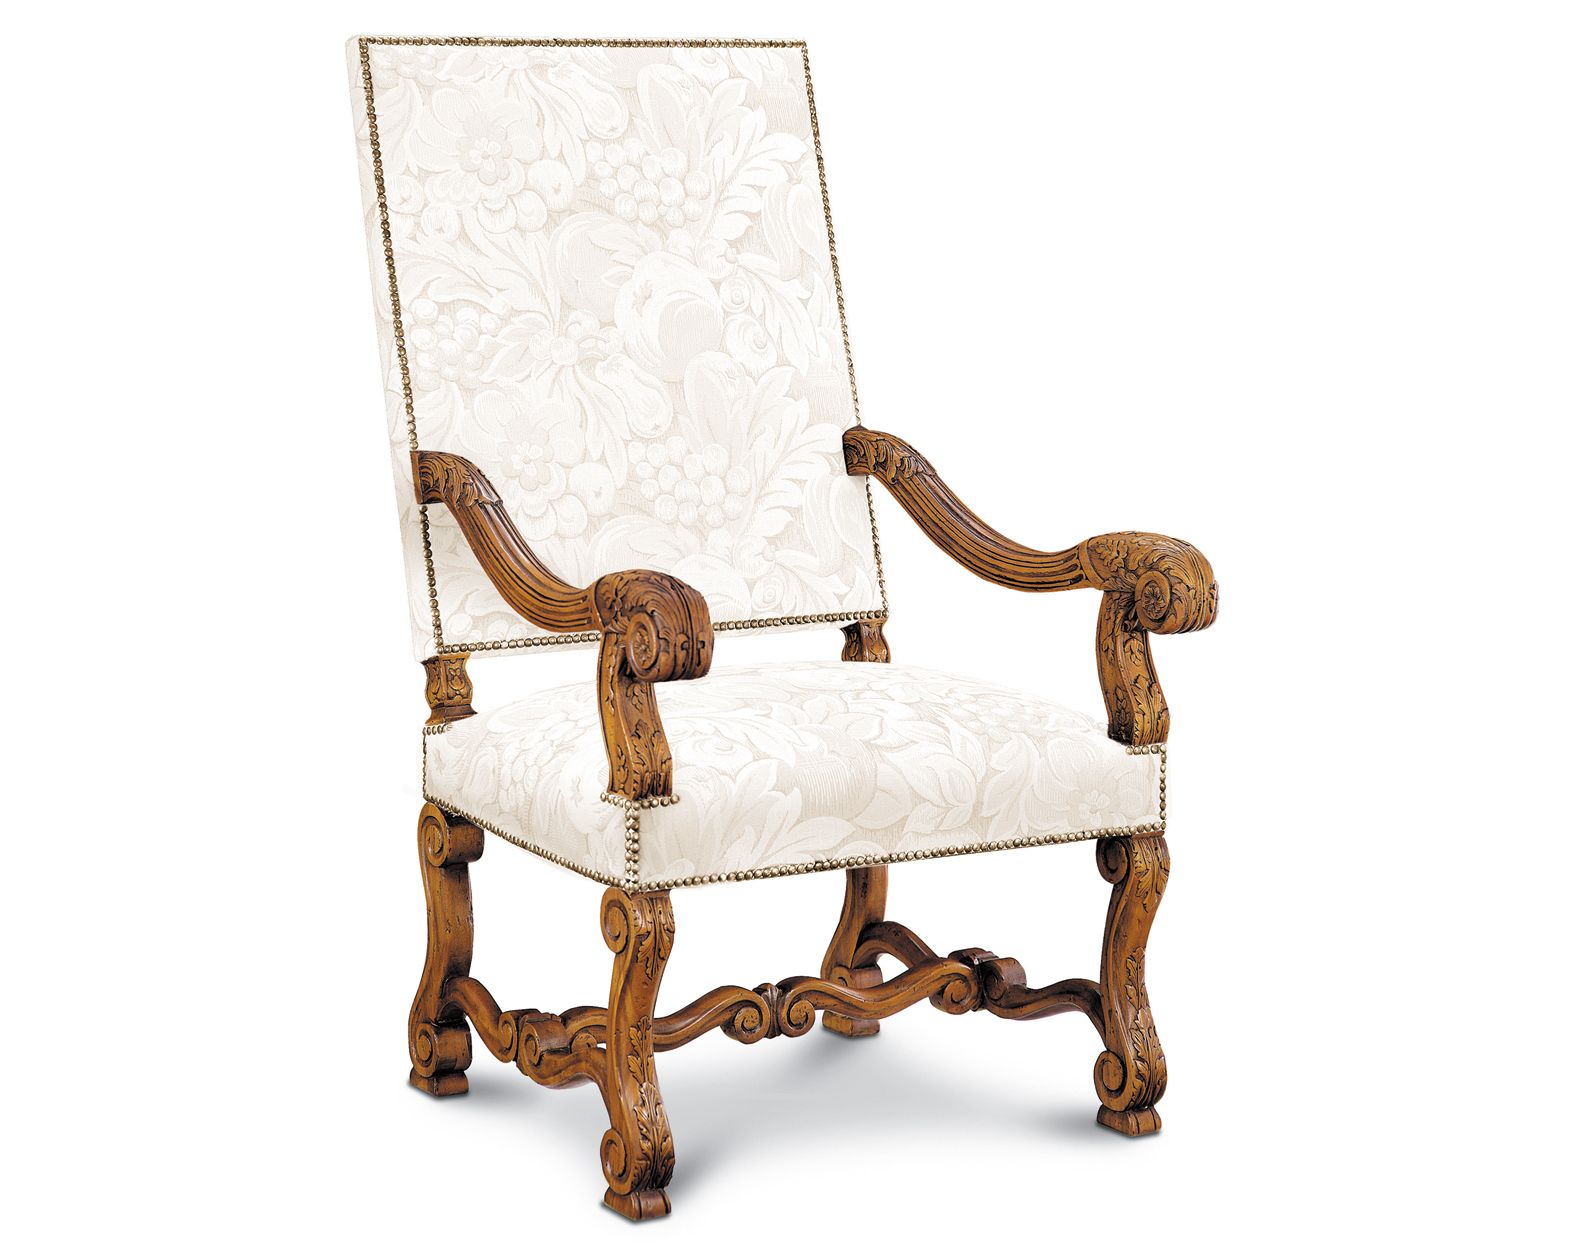 LOUIS XIII CHAIR